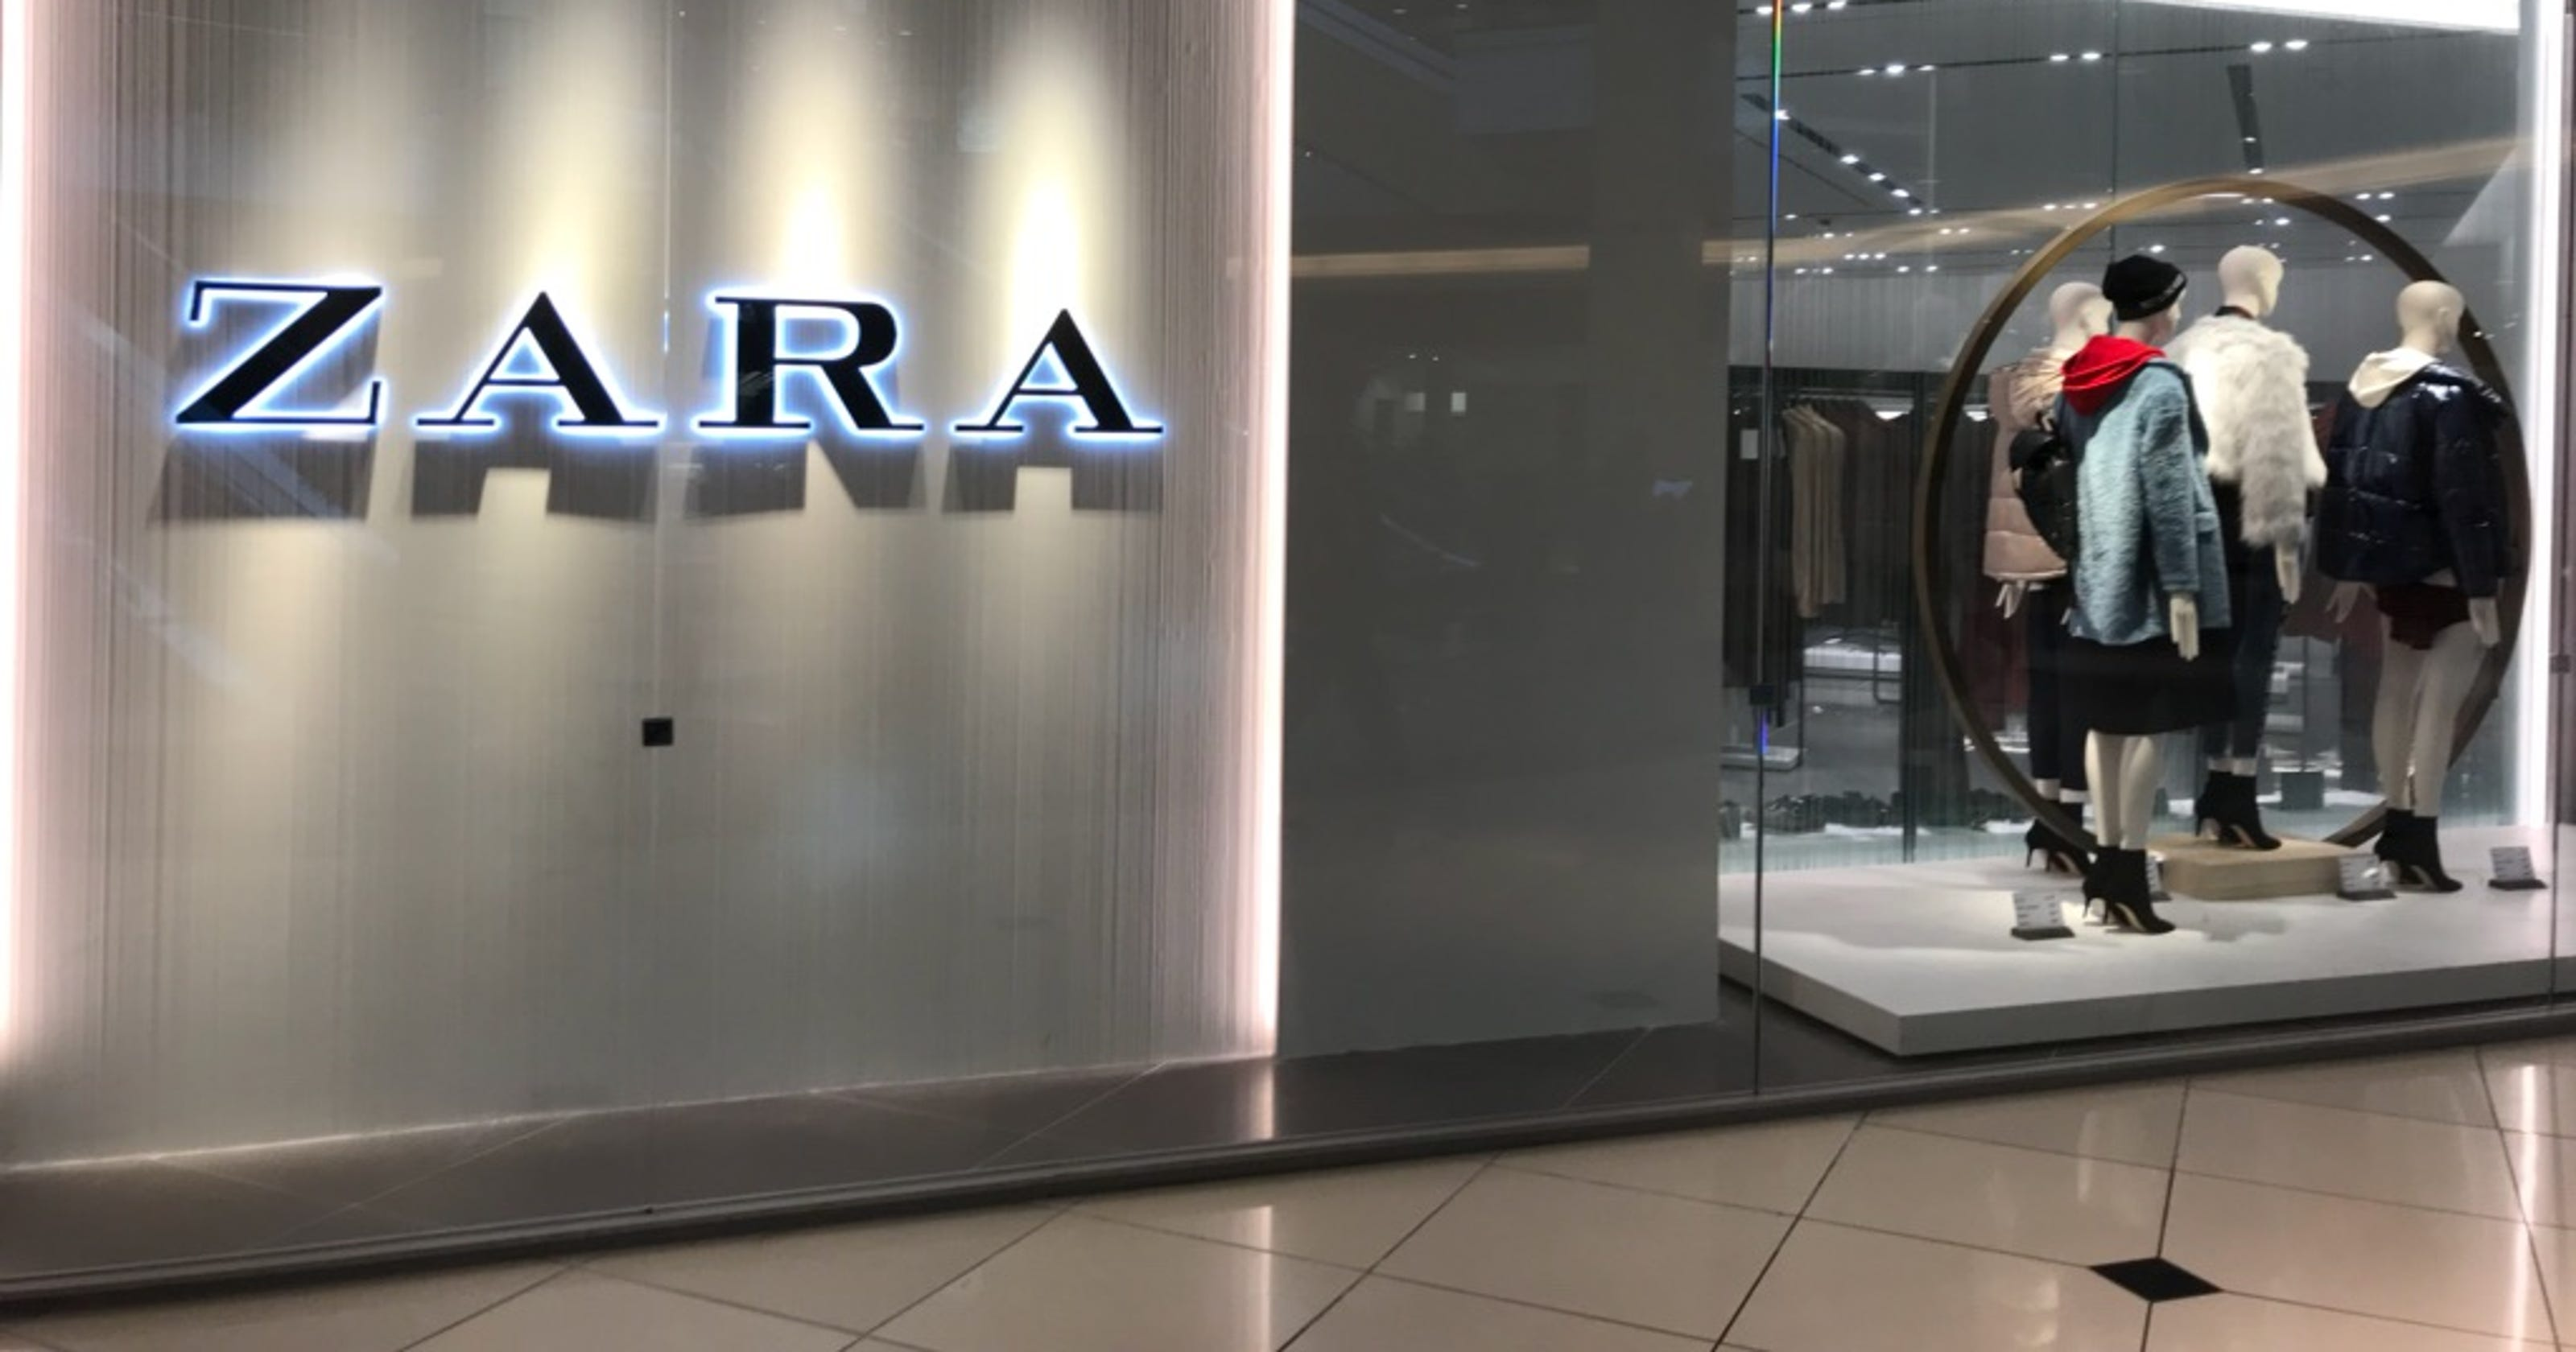 Michigan 39 s first zara store opens at somerset and it 39 s - Interior design jobs in michigan ...